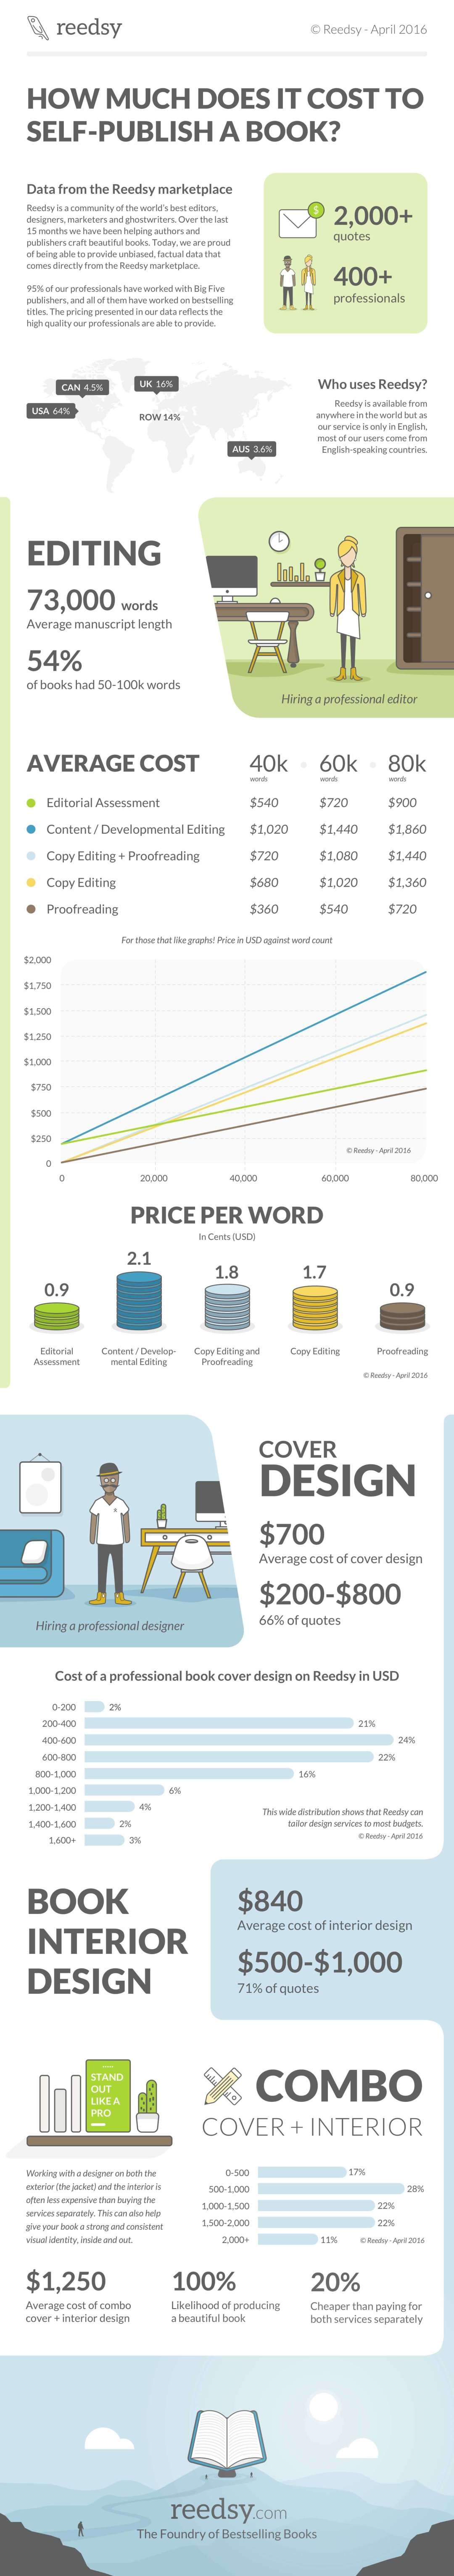 Cost of Editing Infographic